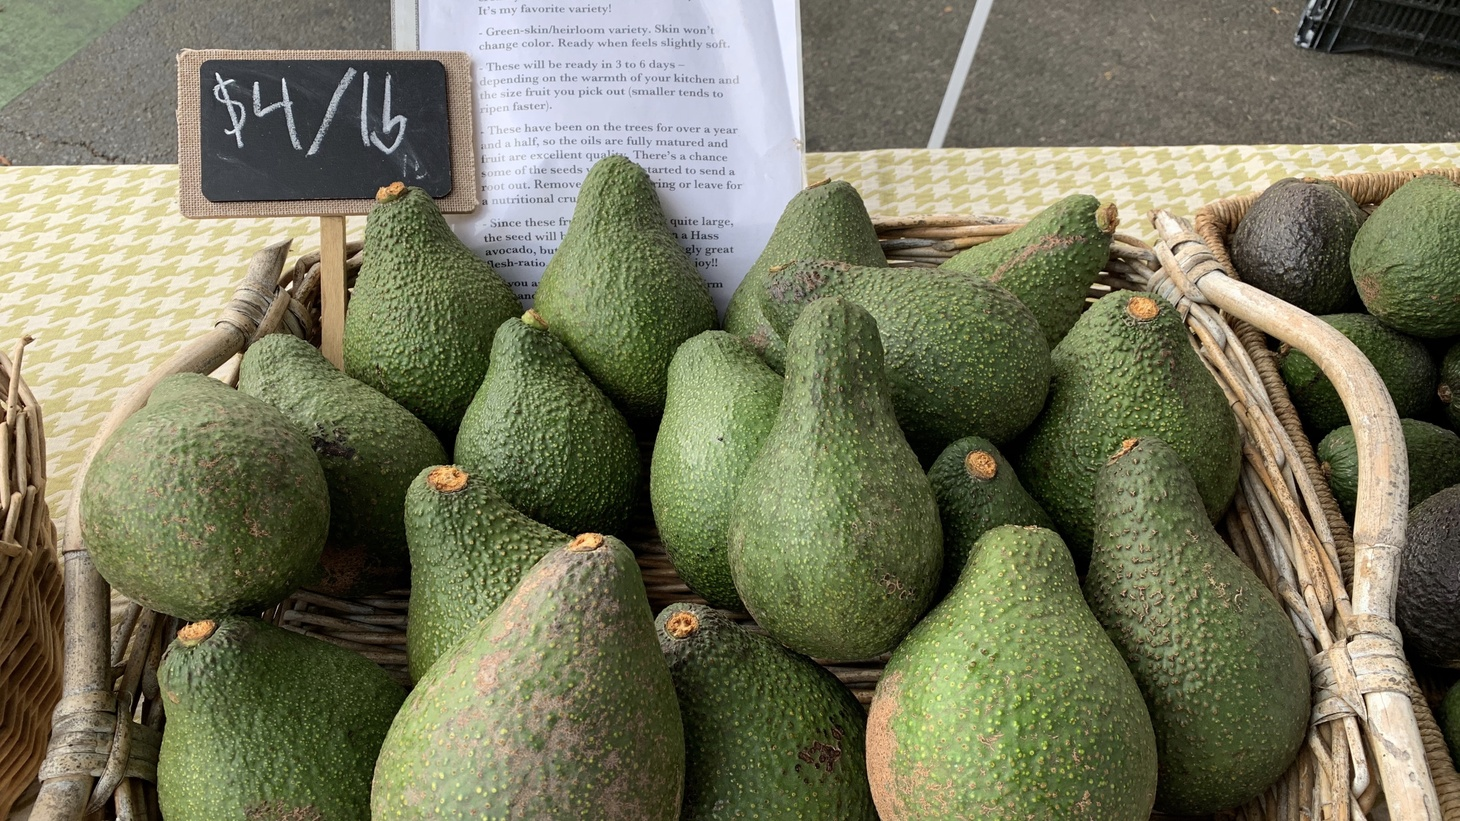 Rincon del Mar Ranch is back at the Santa Monica Farmer's Market this week since taking a hiatus in March.